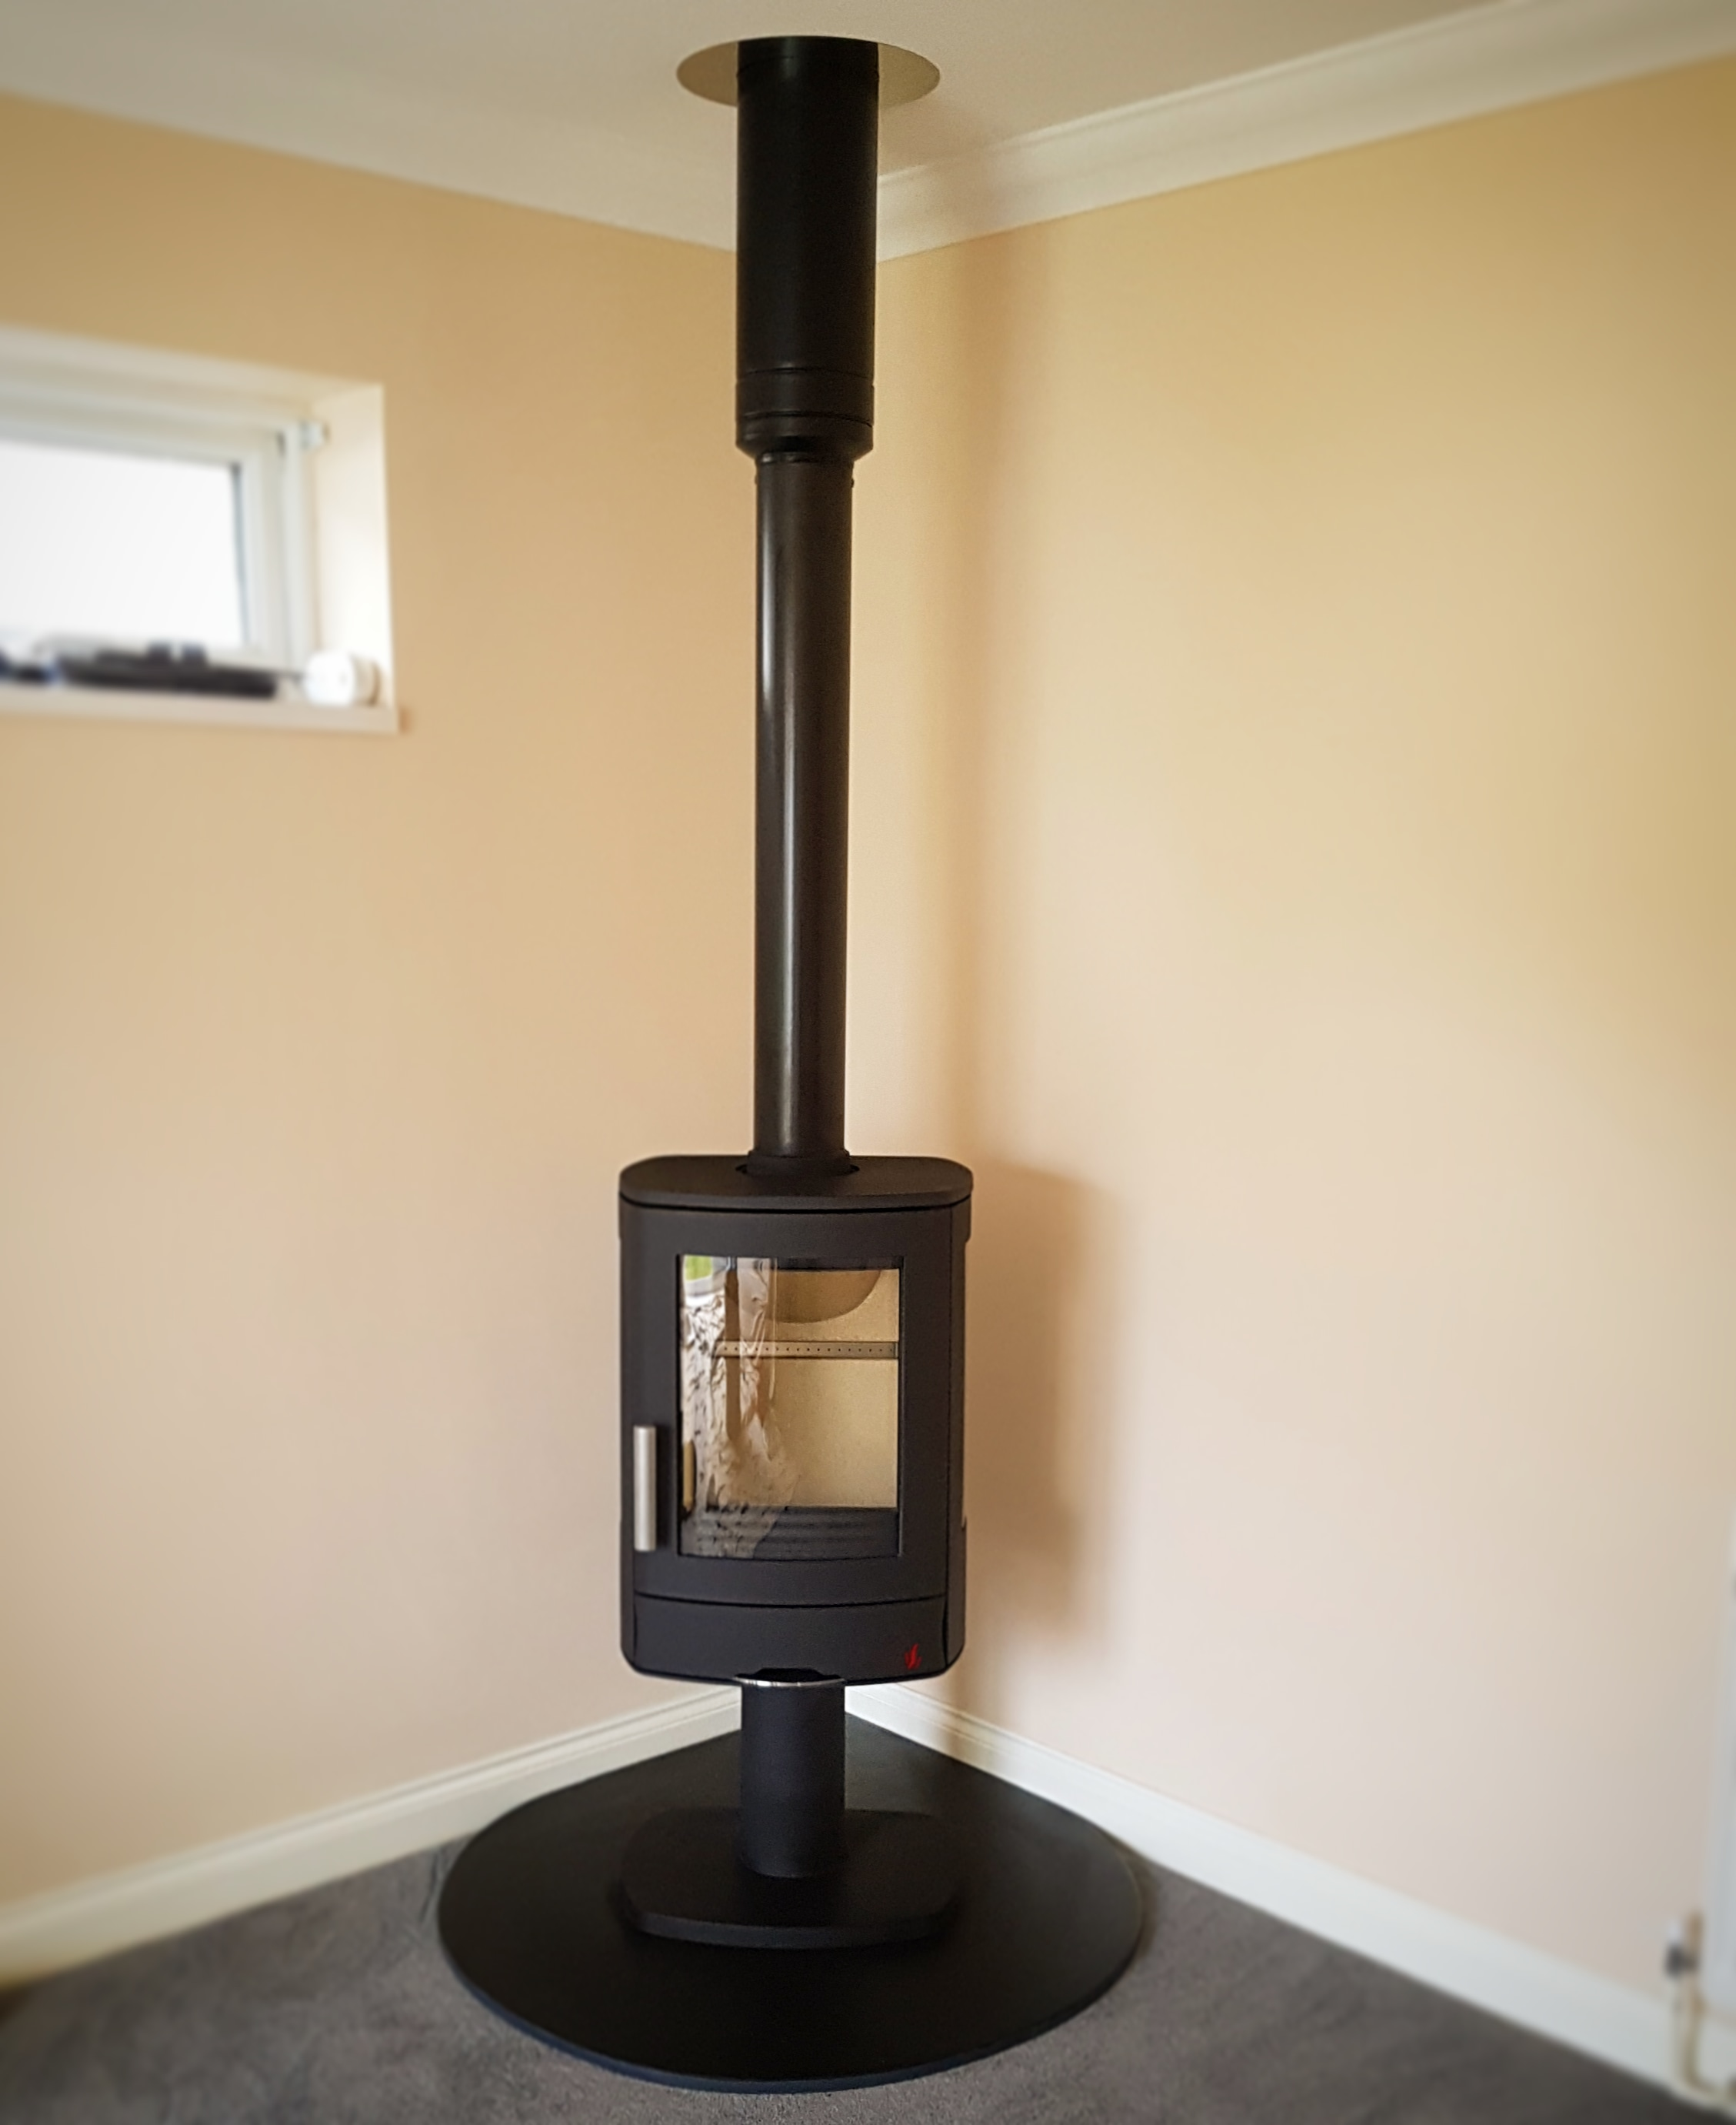 ACR Pedestal Stove Install